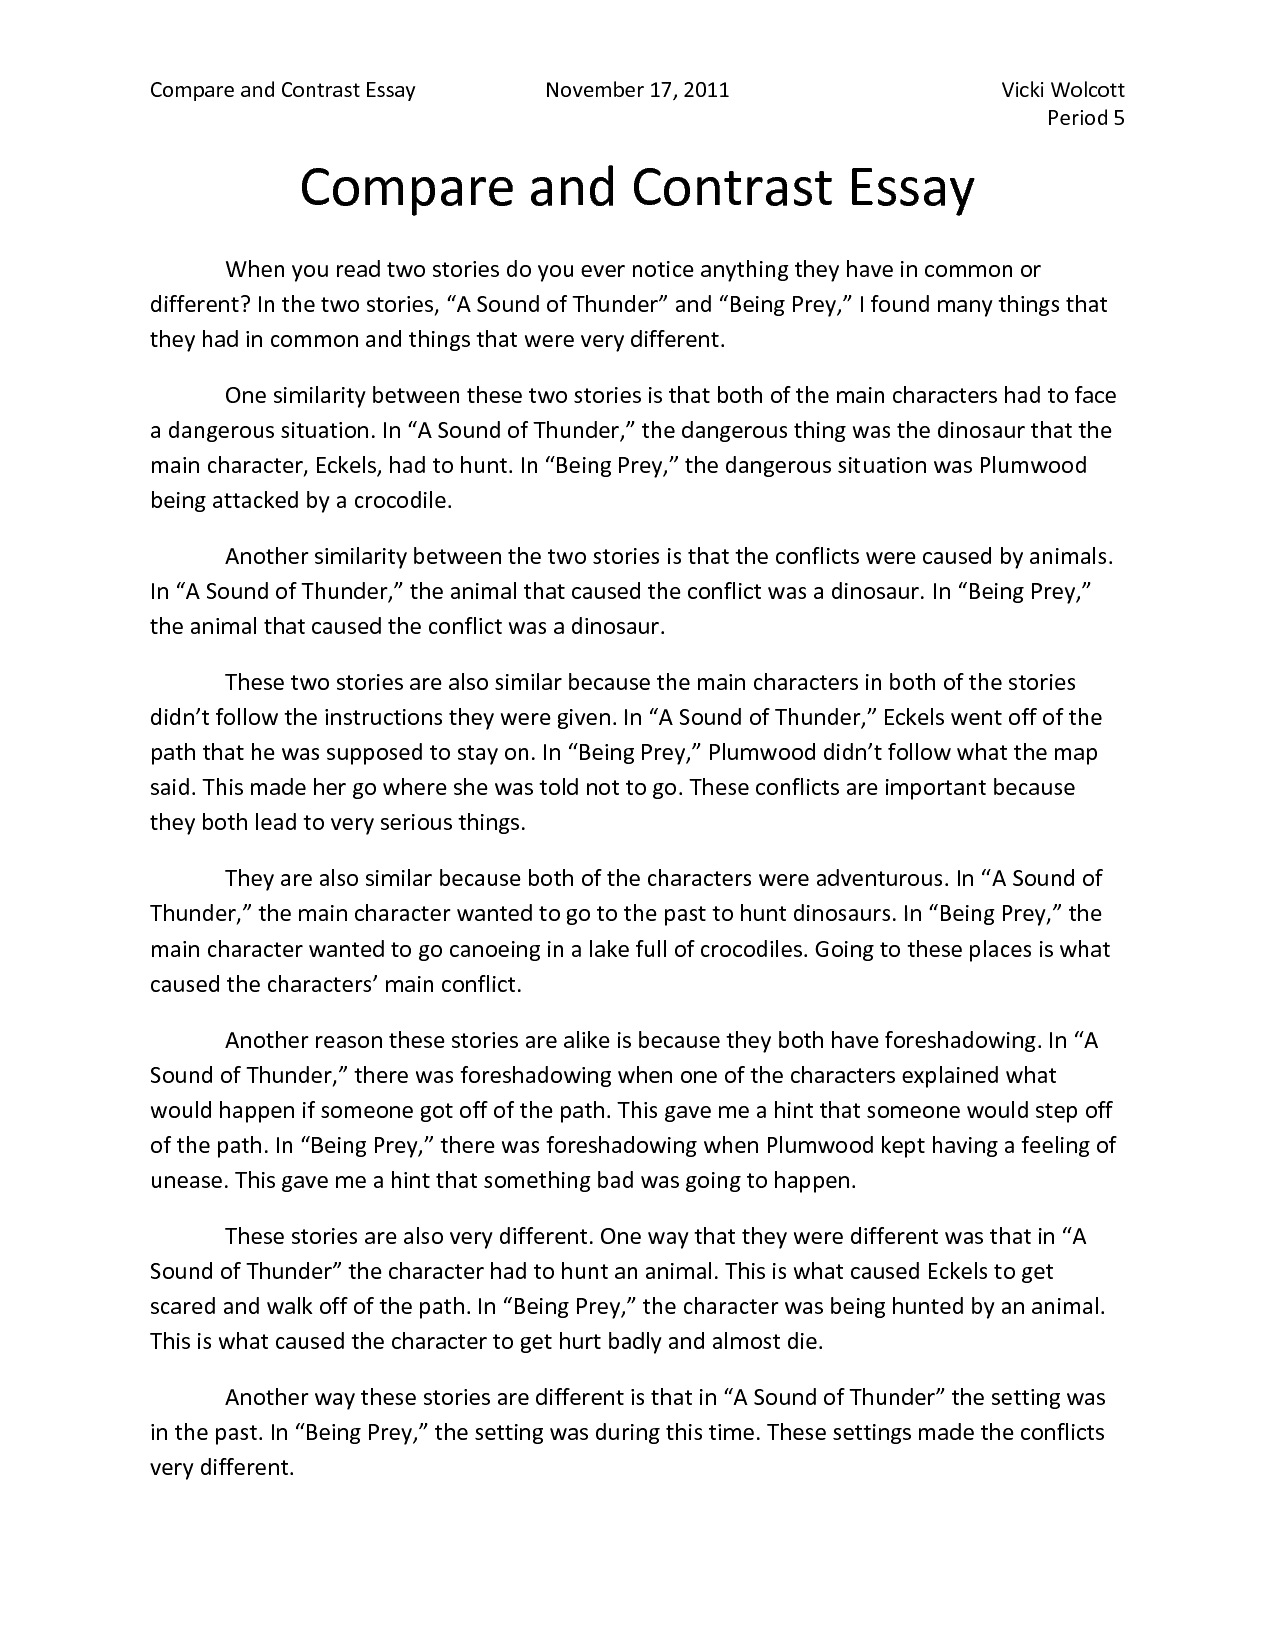 Example of comparison and contrast essay